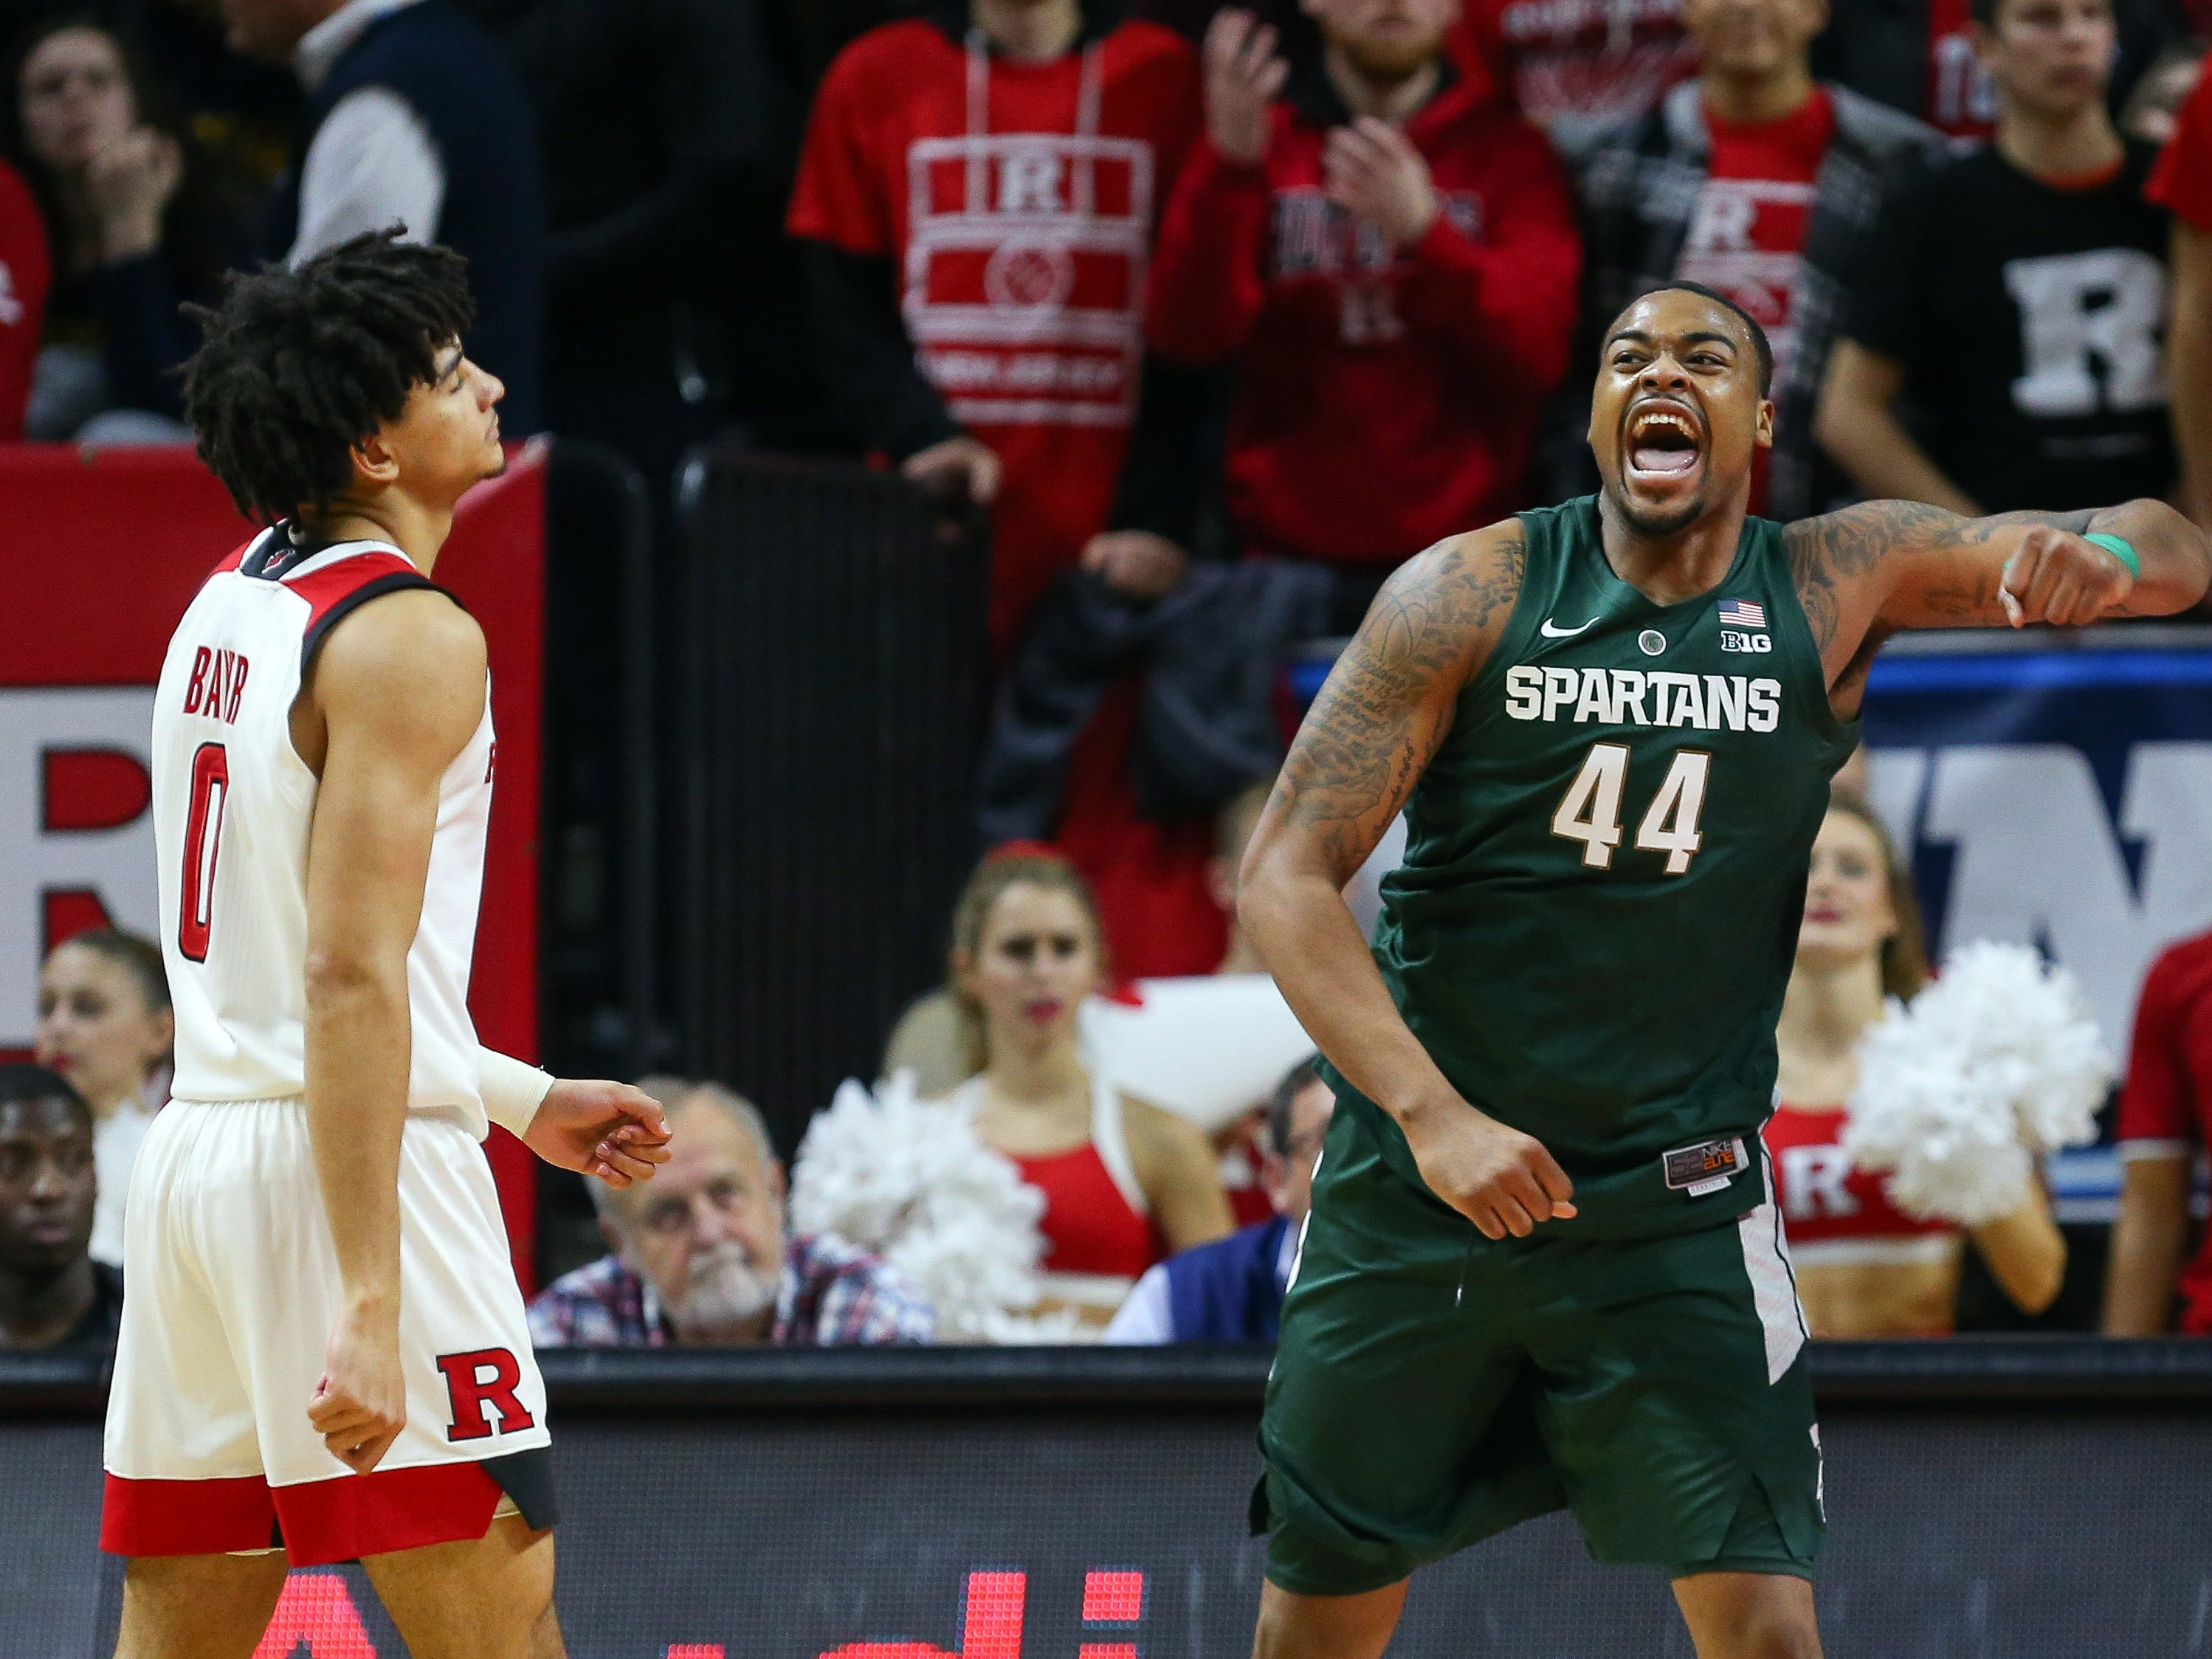 Michigan State Spartans forward Nick Ward (44) celebrates a basket in front of Rutgers Scarlet Knights guard Geo Baker (0) during the second half at Rutgers Athletic Center (RAC).